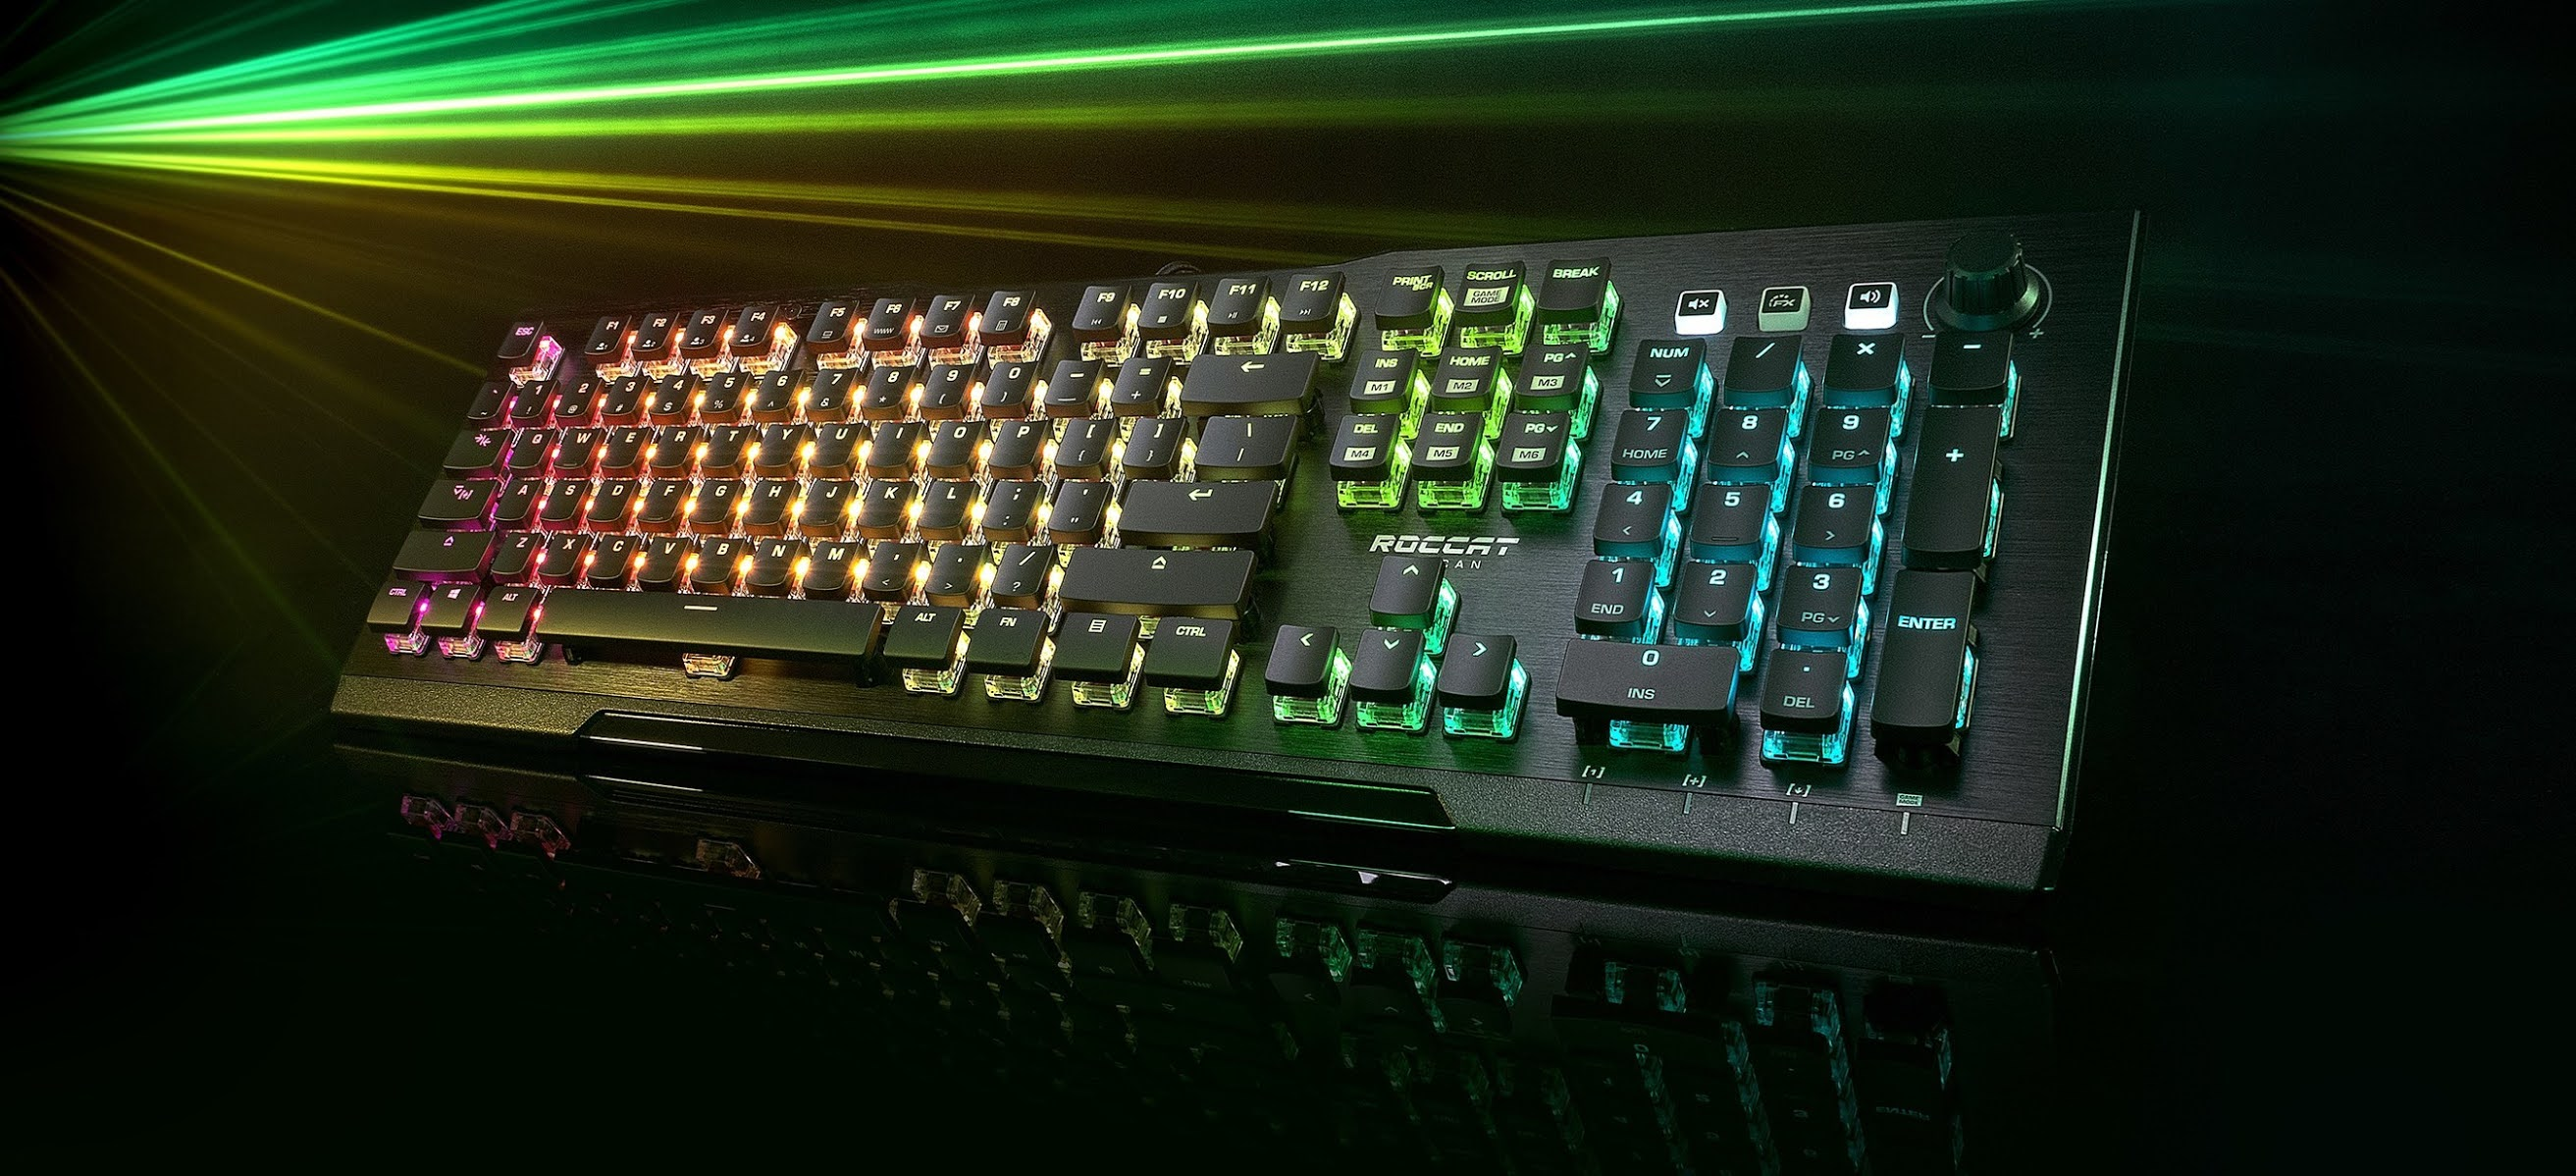 ROCCAT Expands Award-Winning Vulcan PC Gaming Keyboard Series With New Vulcan Pro Model Featuring the Brand's Fan-Favorite Tactile Mechanical Switch Feeling